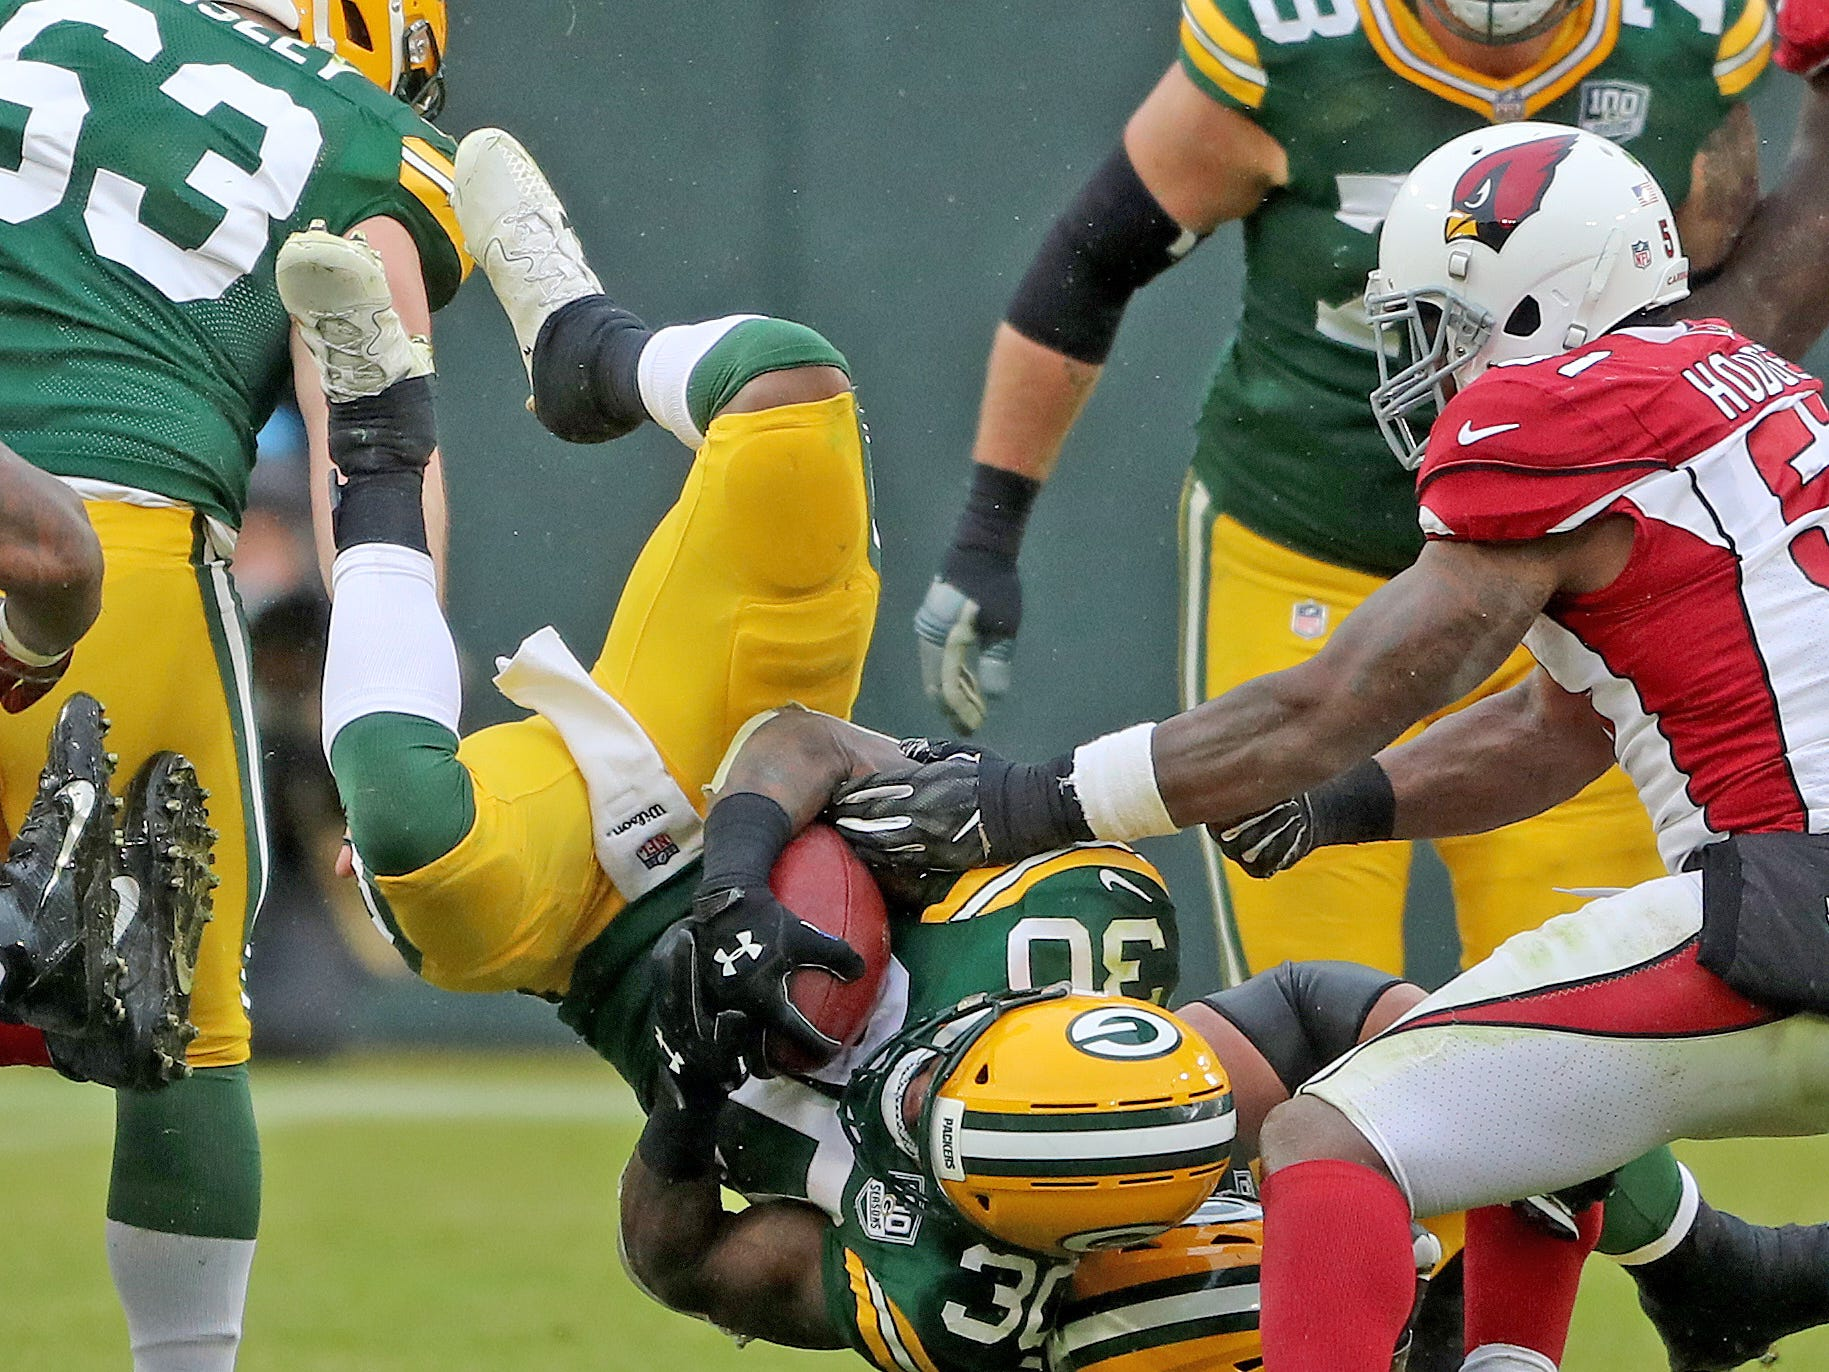 Green Bay Packers running back Jamaal Williams (30) gets flipped on a run against the Arizona Cardinals Sunday, December 2, 2018 at Lambeau Field in Green Bay, Wis. Jim Matthews/USA TODAY NETWORK-Wis